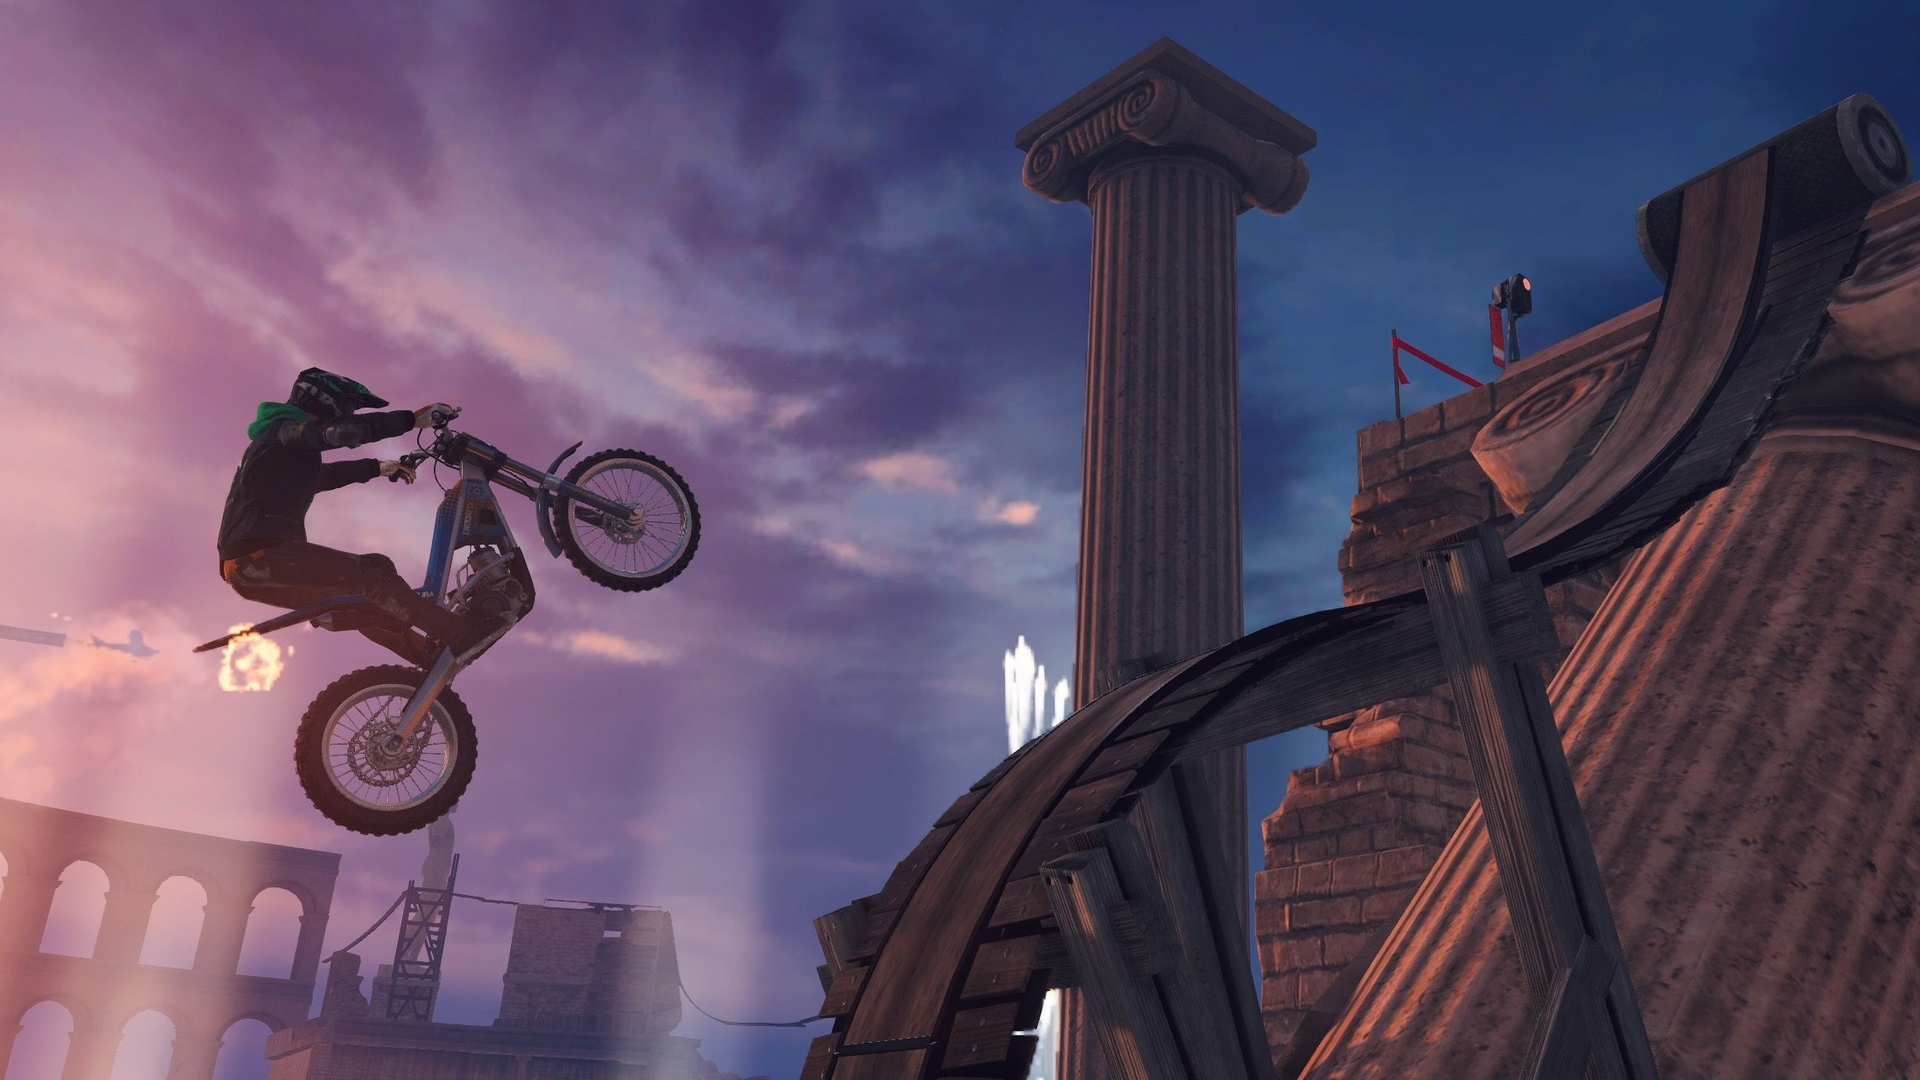 Trials Rising's leaderboards and user-created tracks will be cross-platform